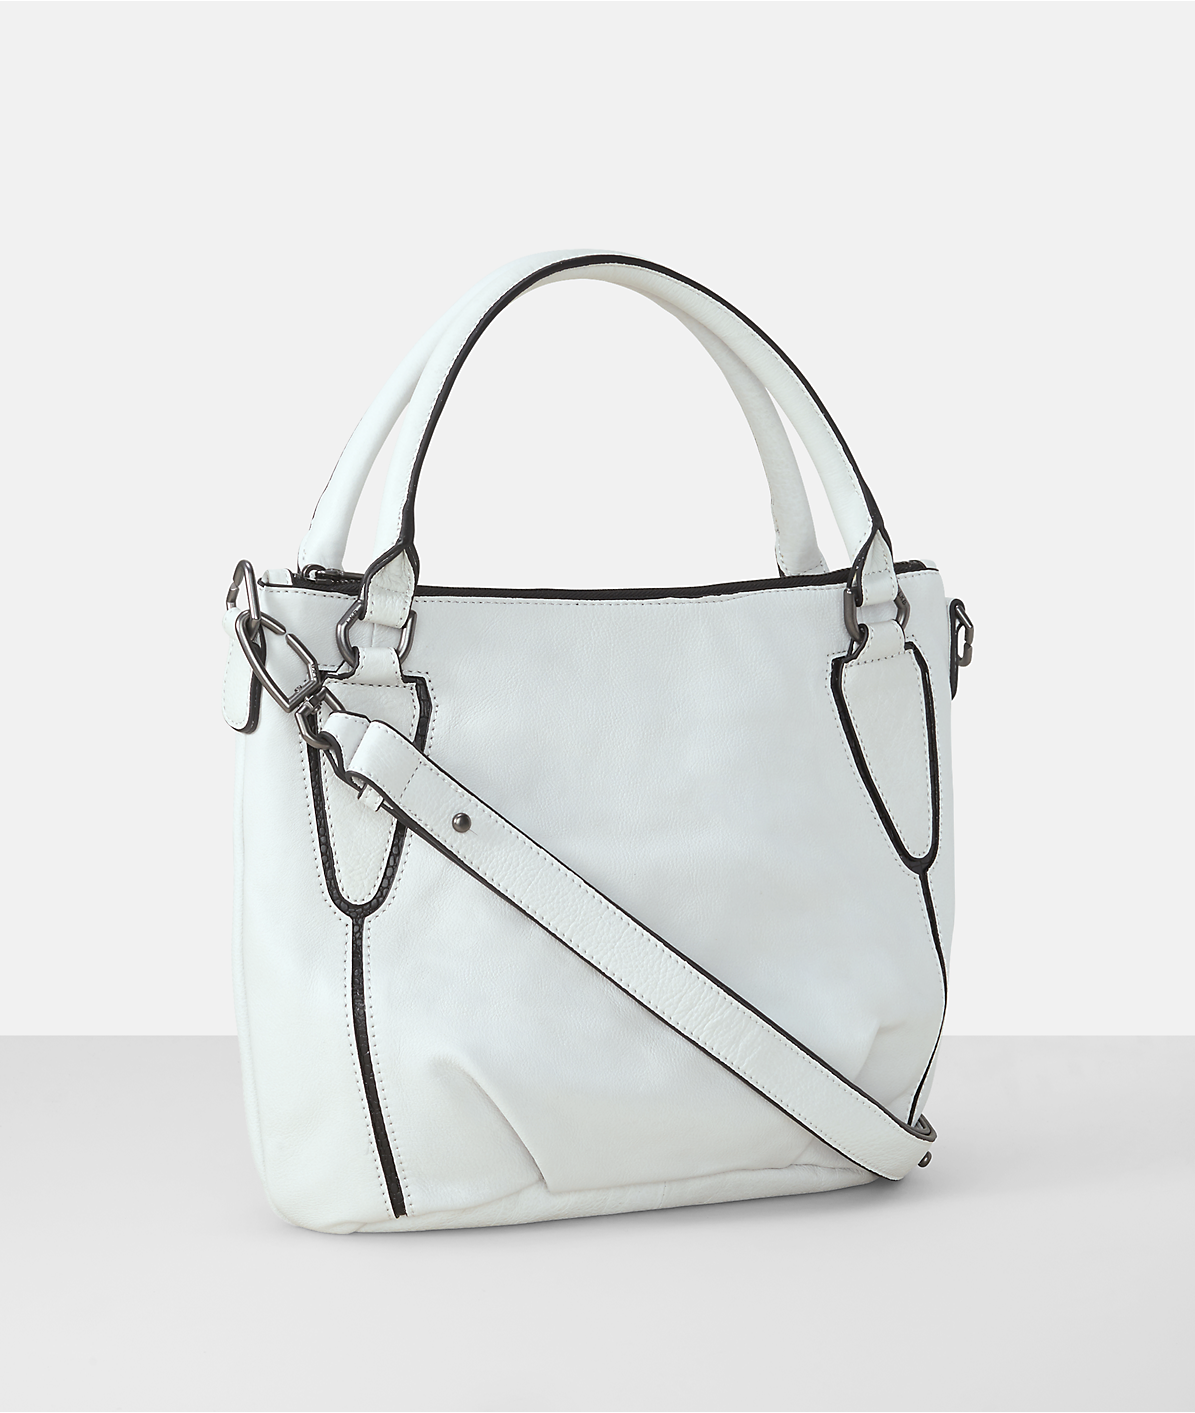 Bag GinaS7 from liebeskind